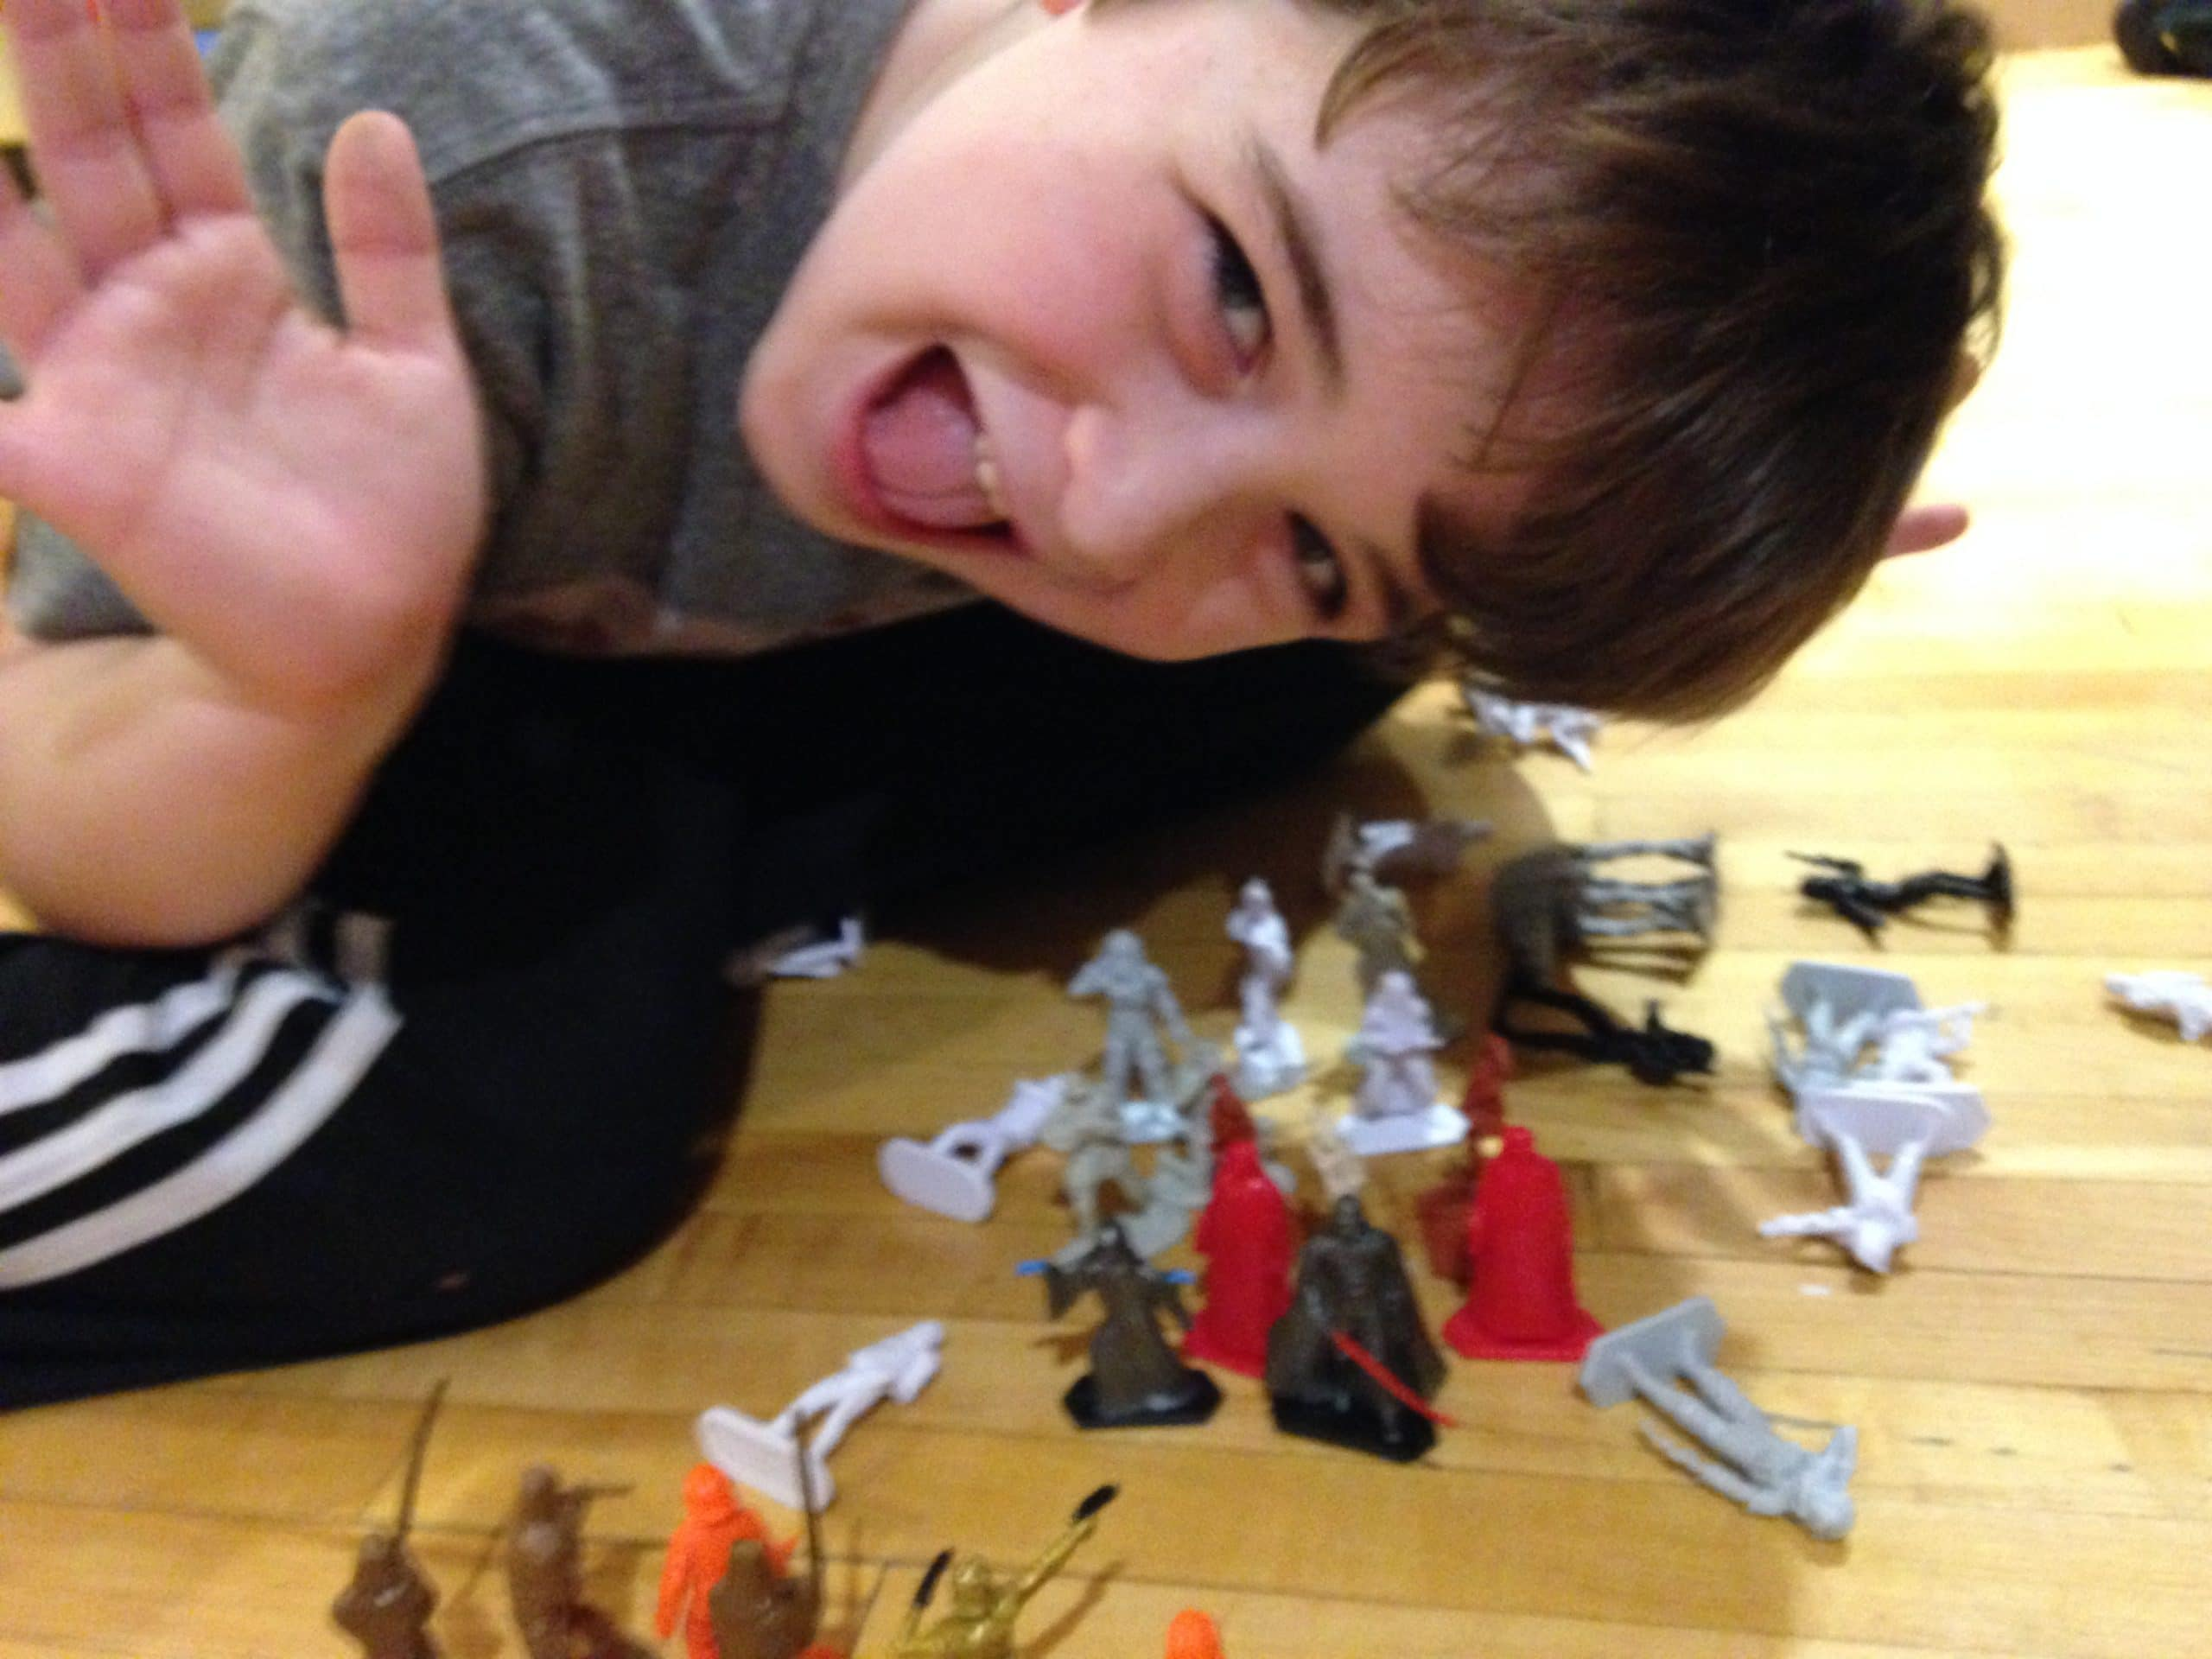 Star Wars Command gives kids the endless ability to imagine the battle #CommandTheForce